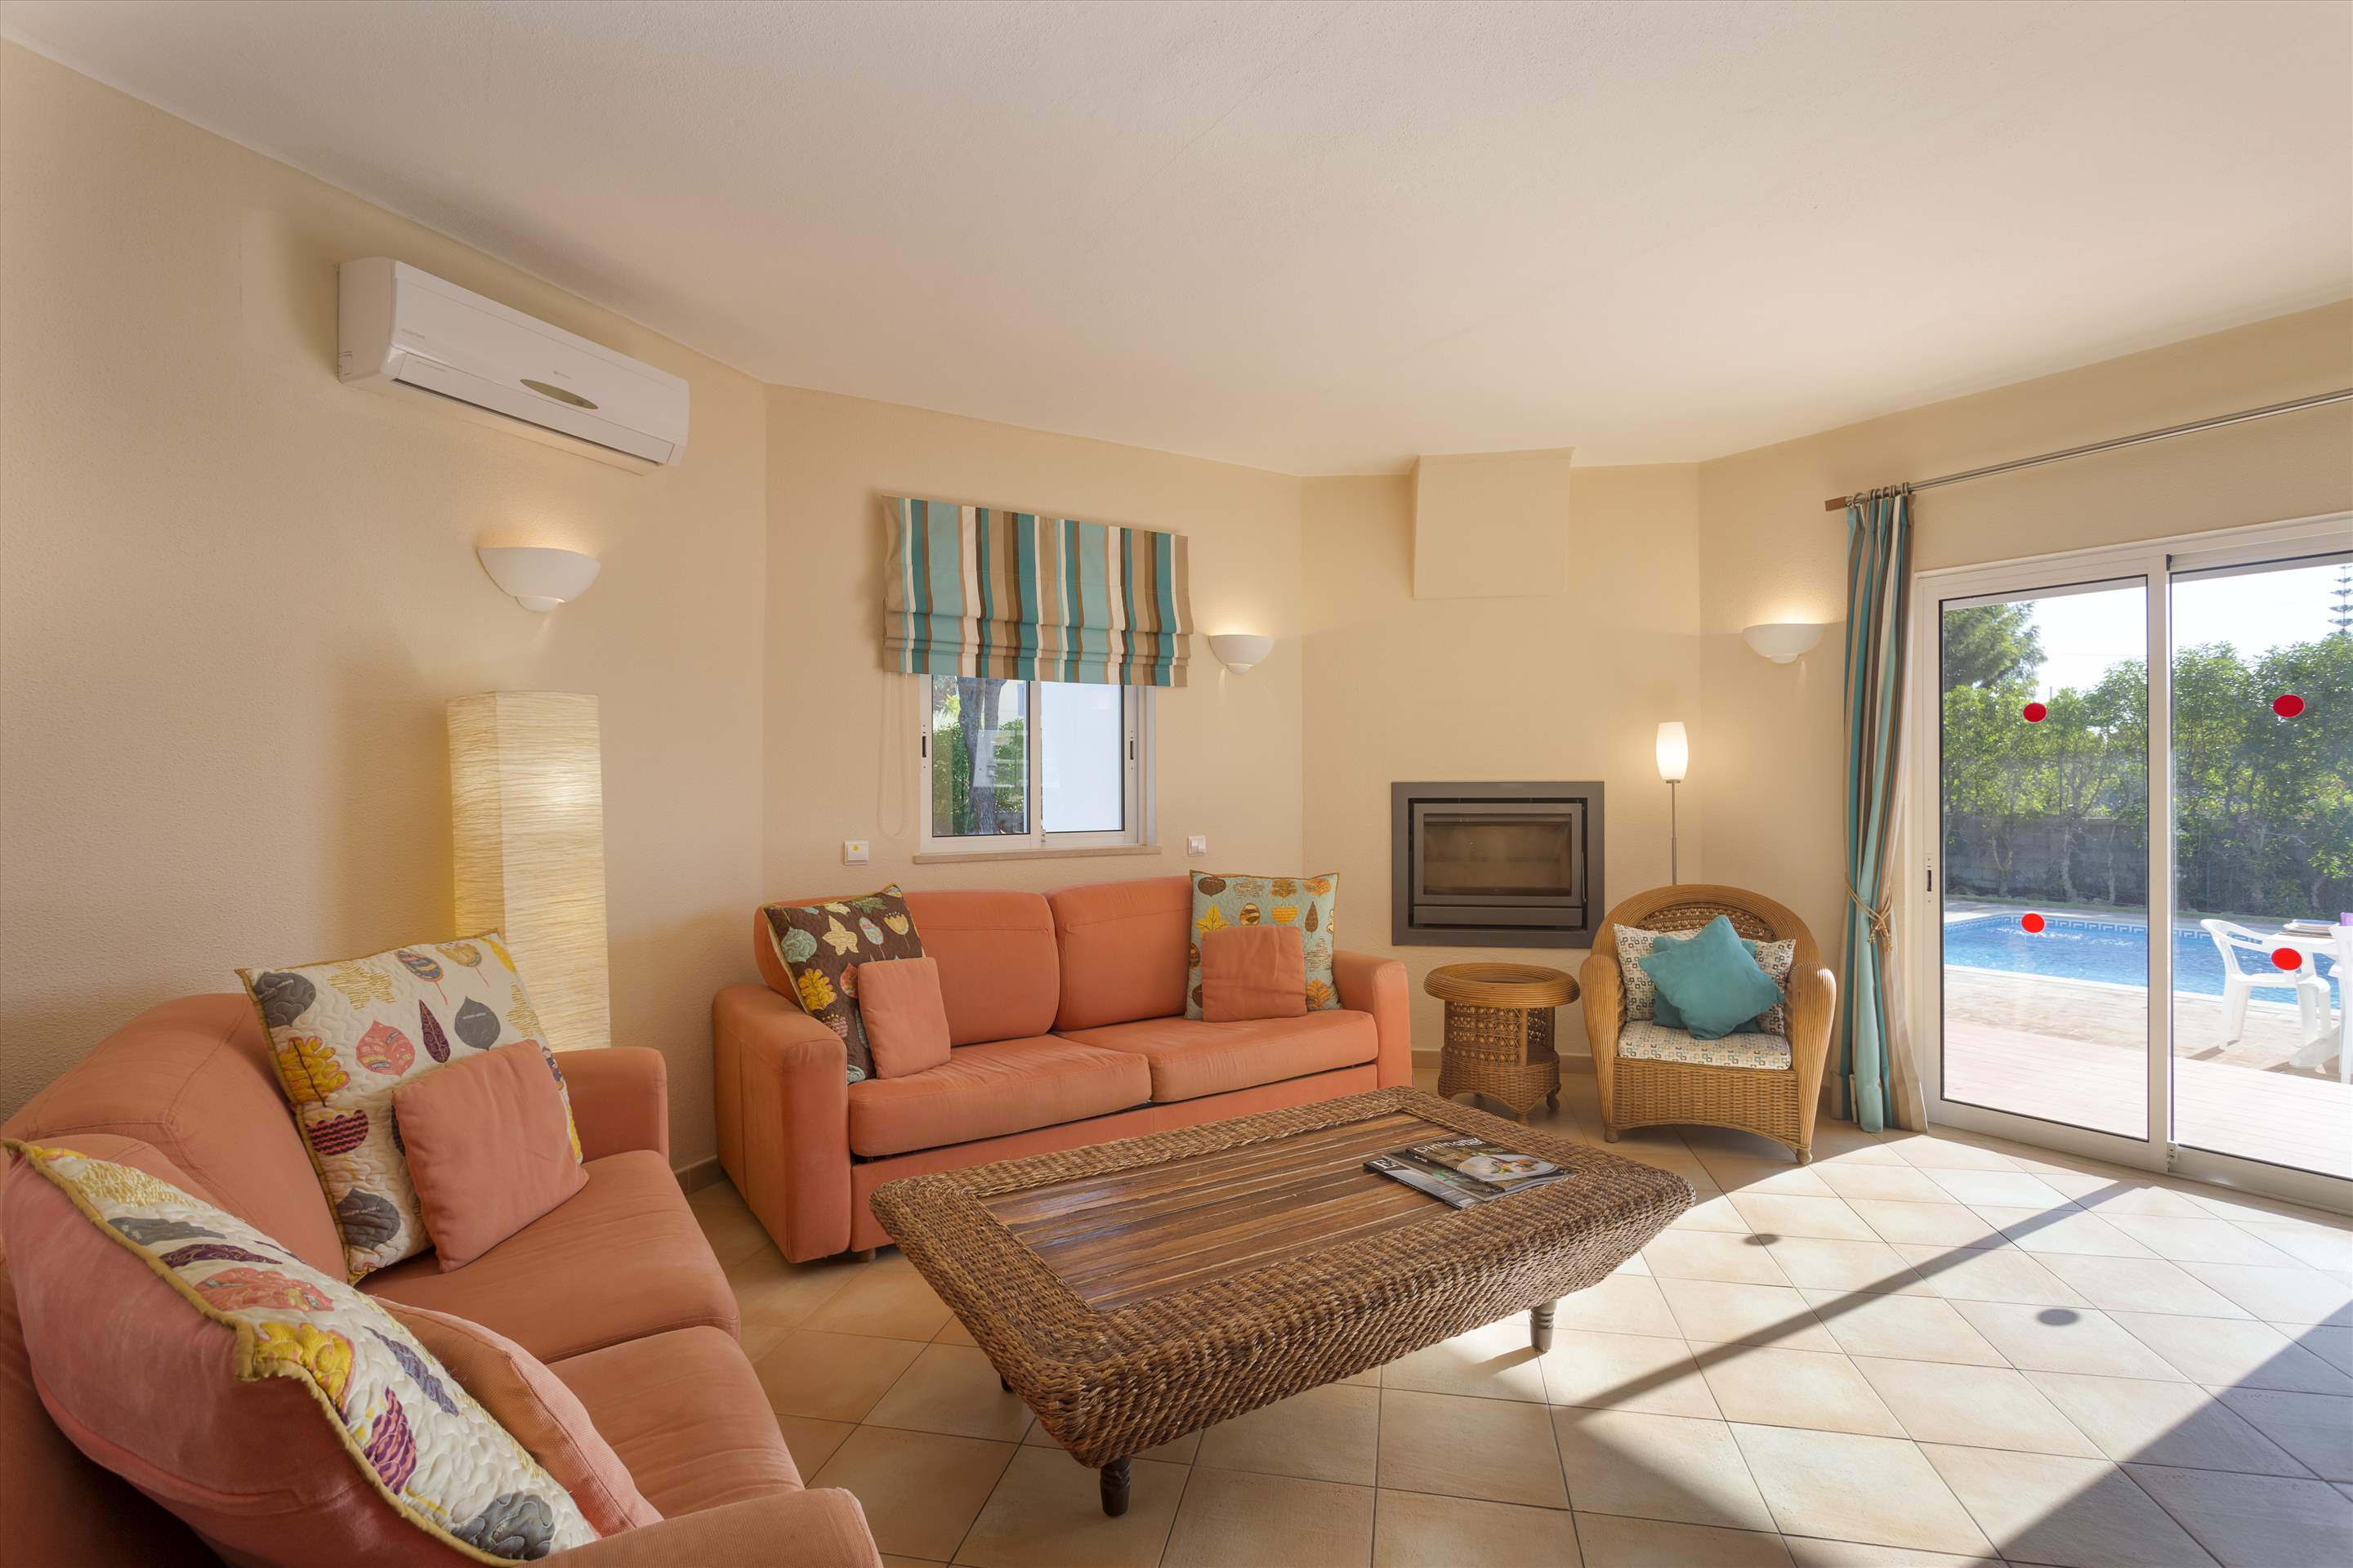 Casa Nova, 3 bedroom villa in Vilamoura Area, Algarve Photo #3